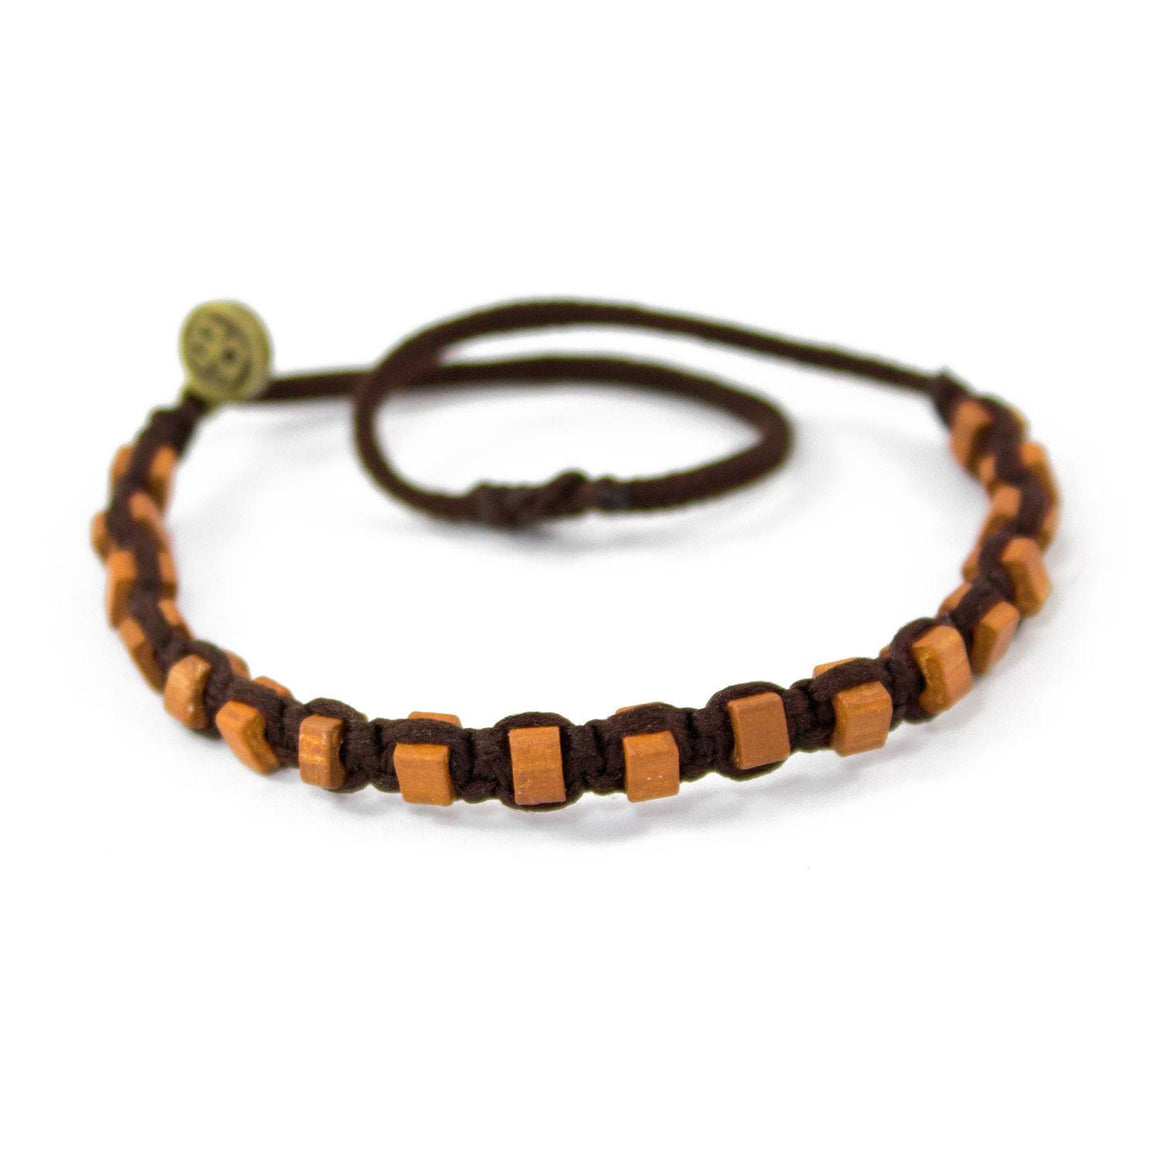 Brown Andes Chocolate Brown macrame artisan bracelets cover